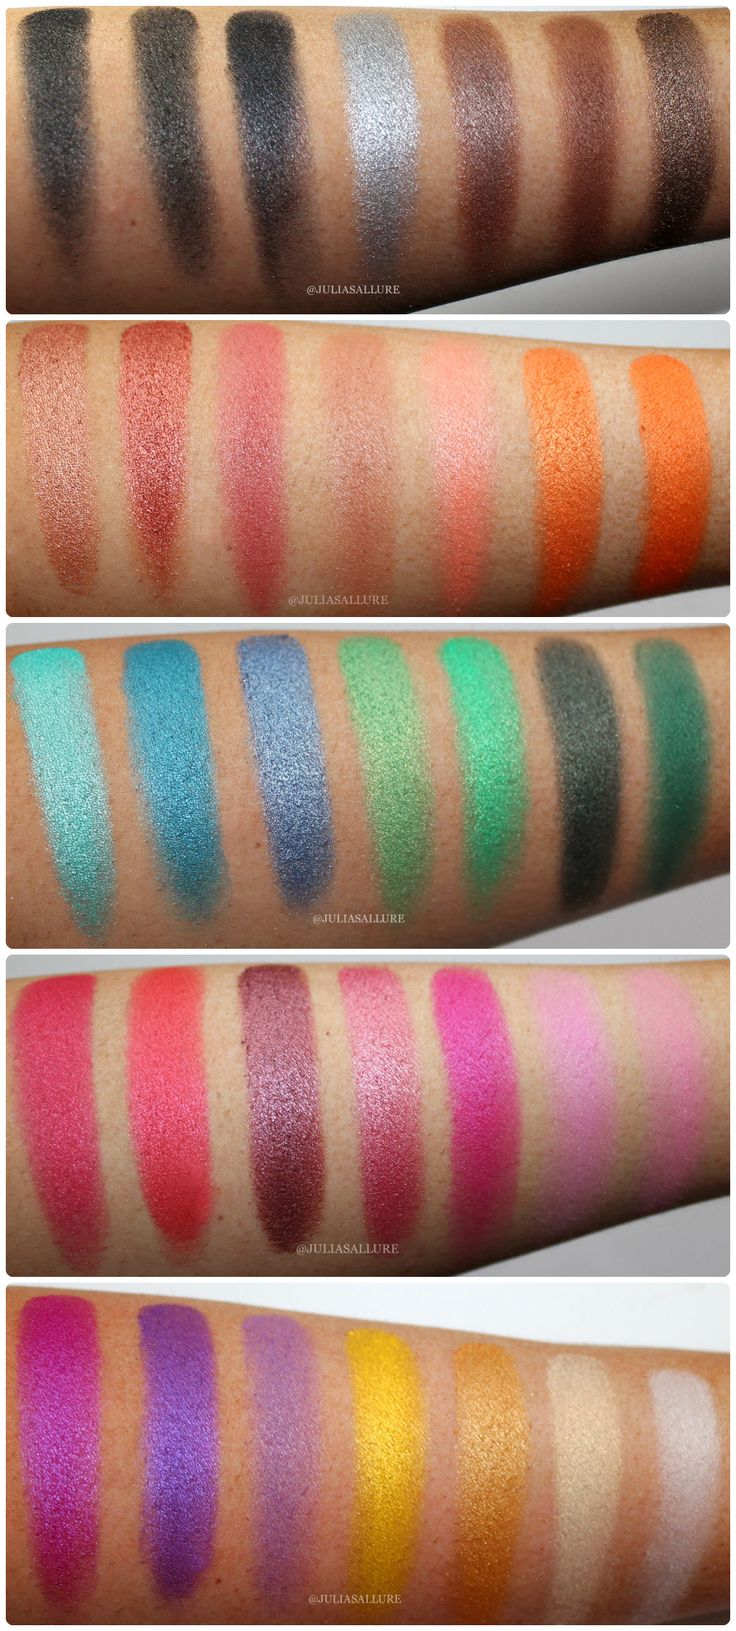 Morphe 35k eyeshadow palette review beauty in bold - Morphe Brushes 35u Multi Color Shimmer Palette Swatches And Review